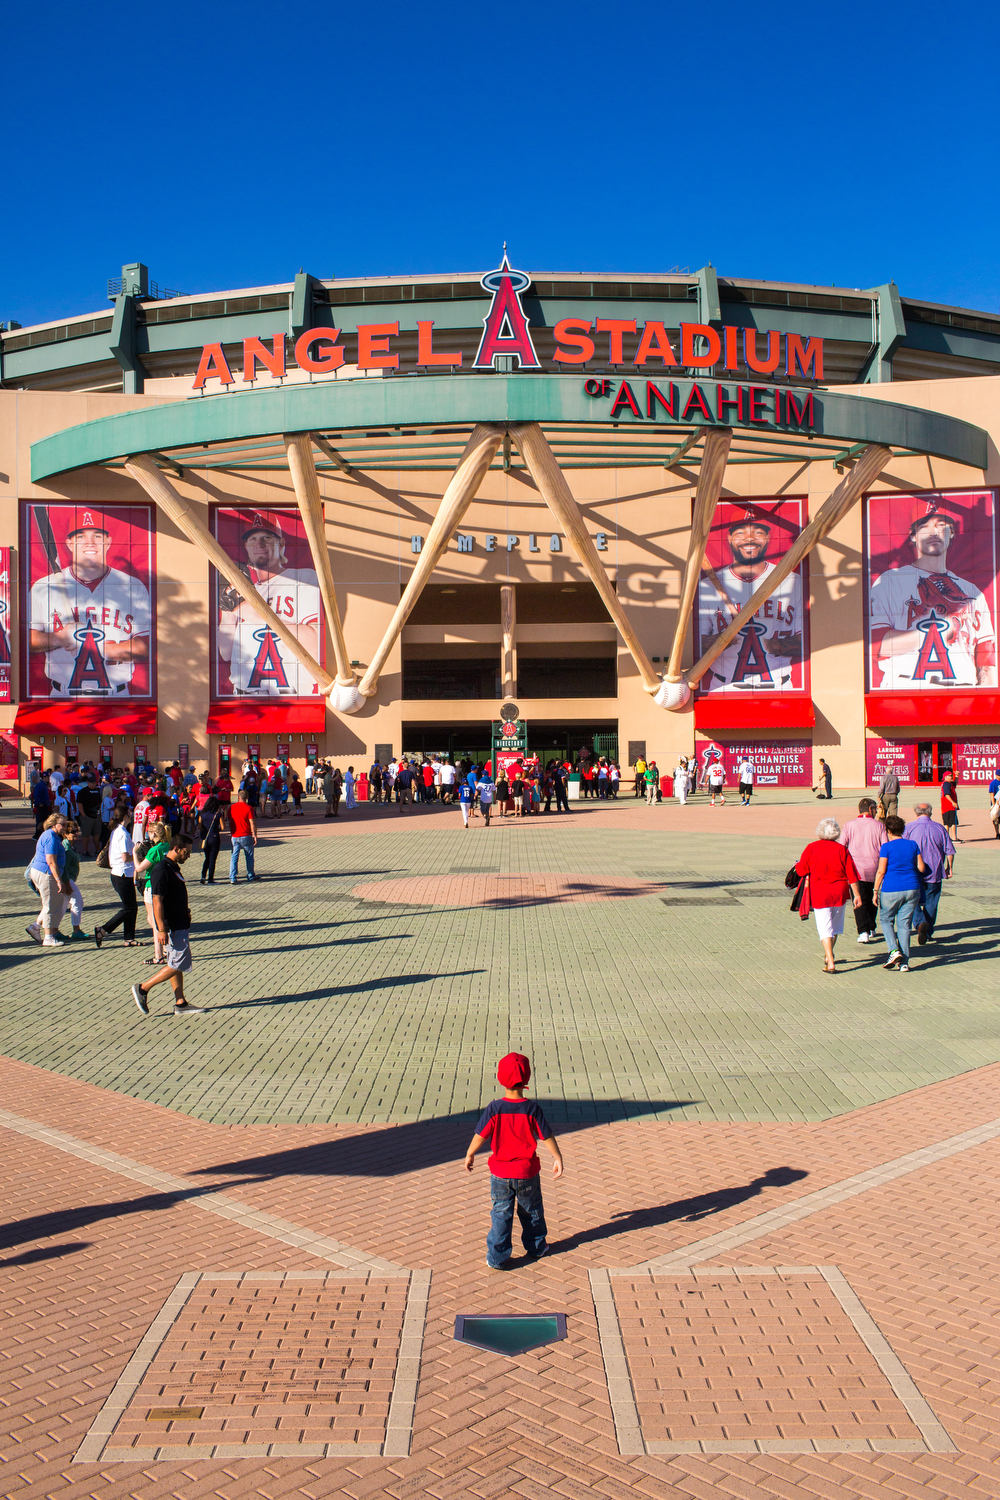 In 2014, I photographed all 30 MLB stadiums.  In Anaheim, CA, a young fan stands outside Angels Stadium of Anaheim. The home plate gate entrance features a full-size brick infield and pitcher's mound.